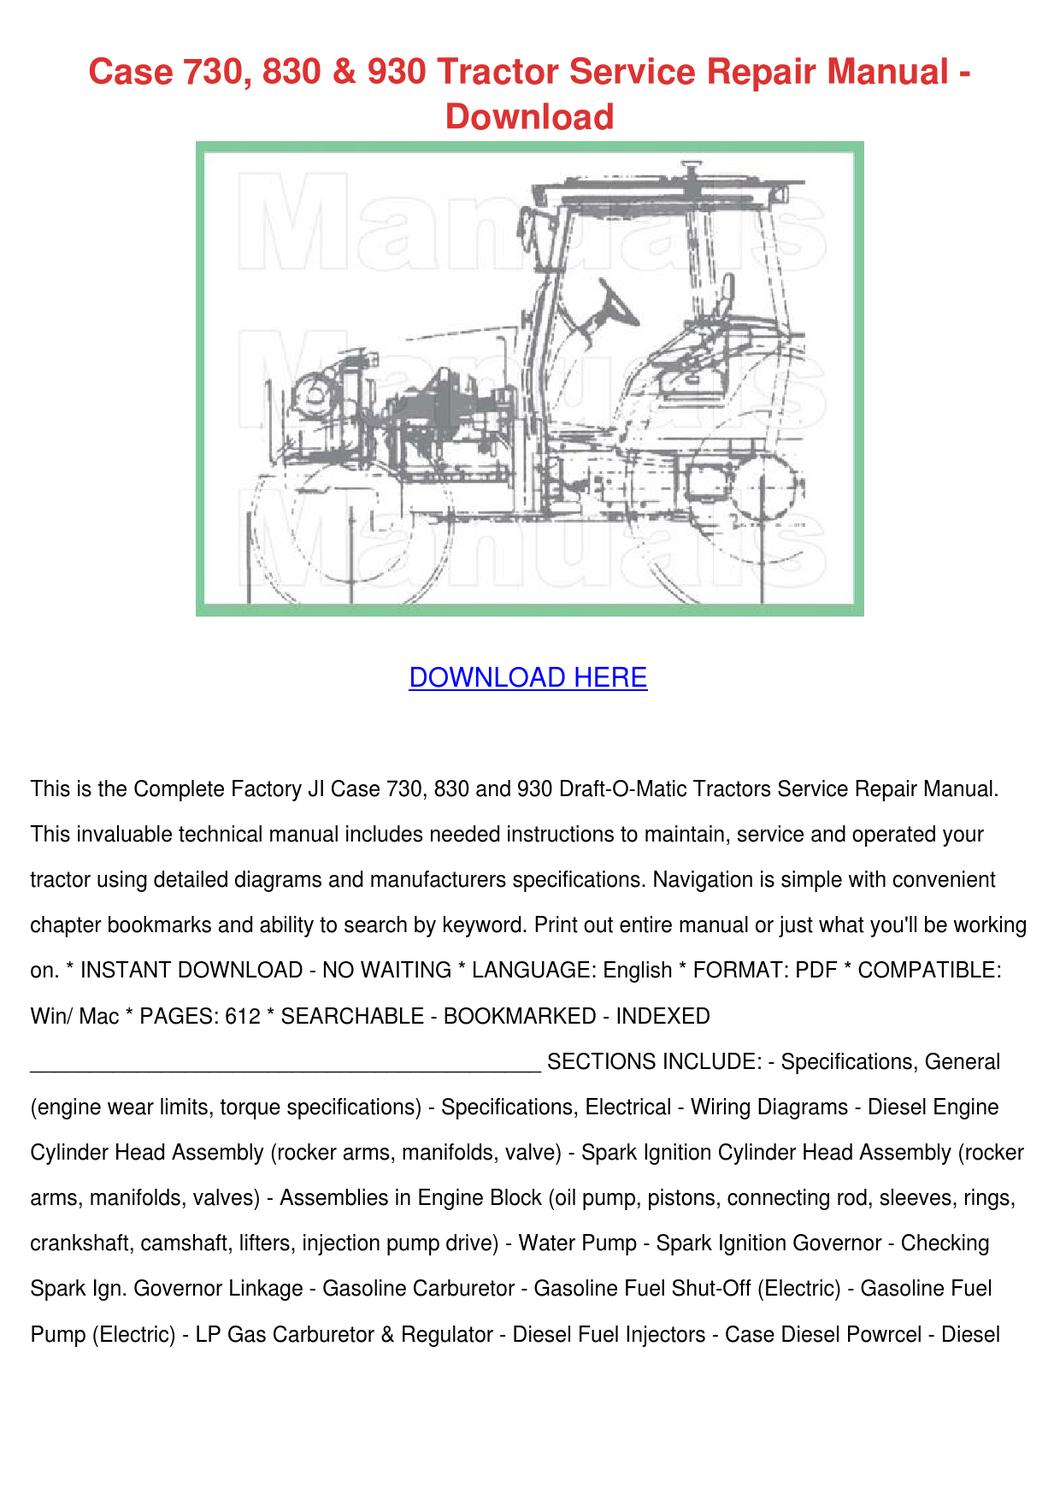 Case 730 830 930 Tractor Service Repair Manua By